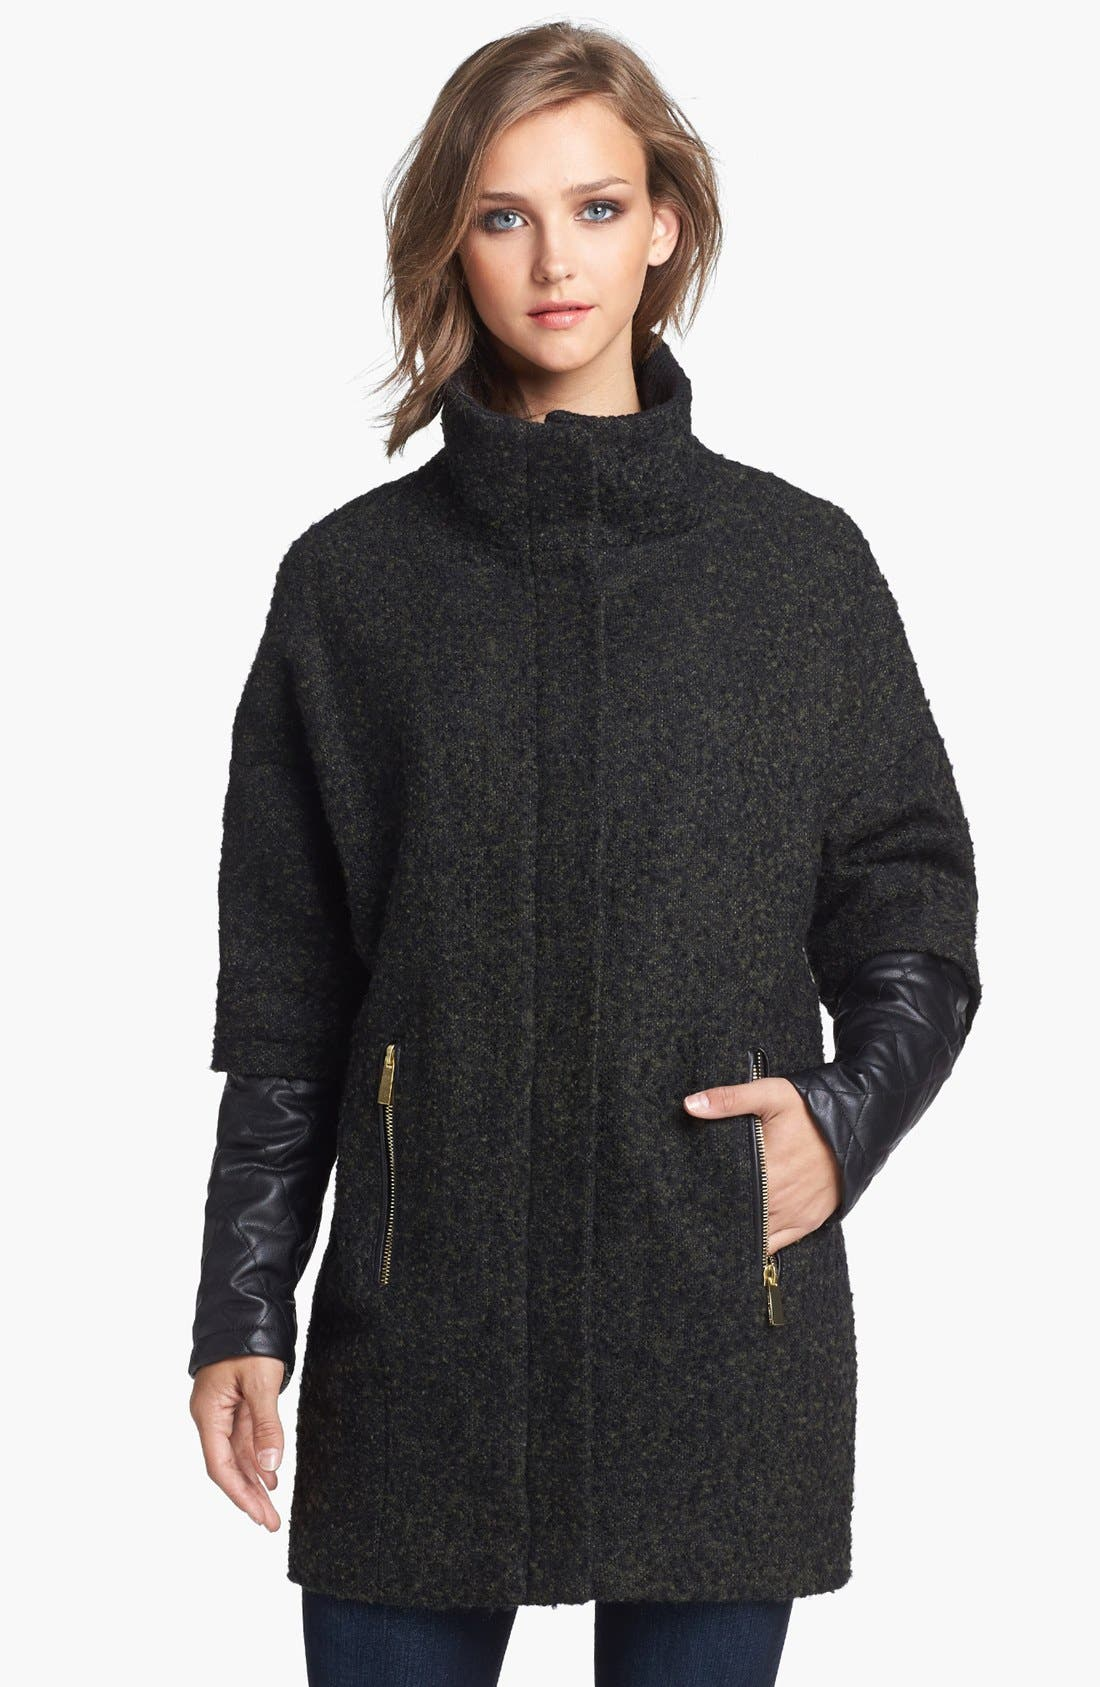 Alternate Image 1 Selected - Vince Camuto Faux Leather Sleeve Bouclé Tweed Coat